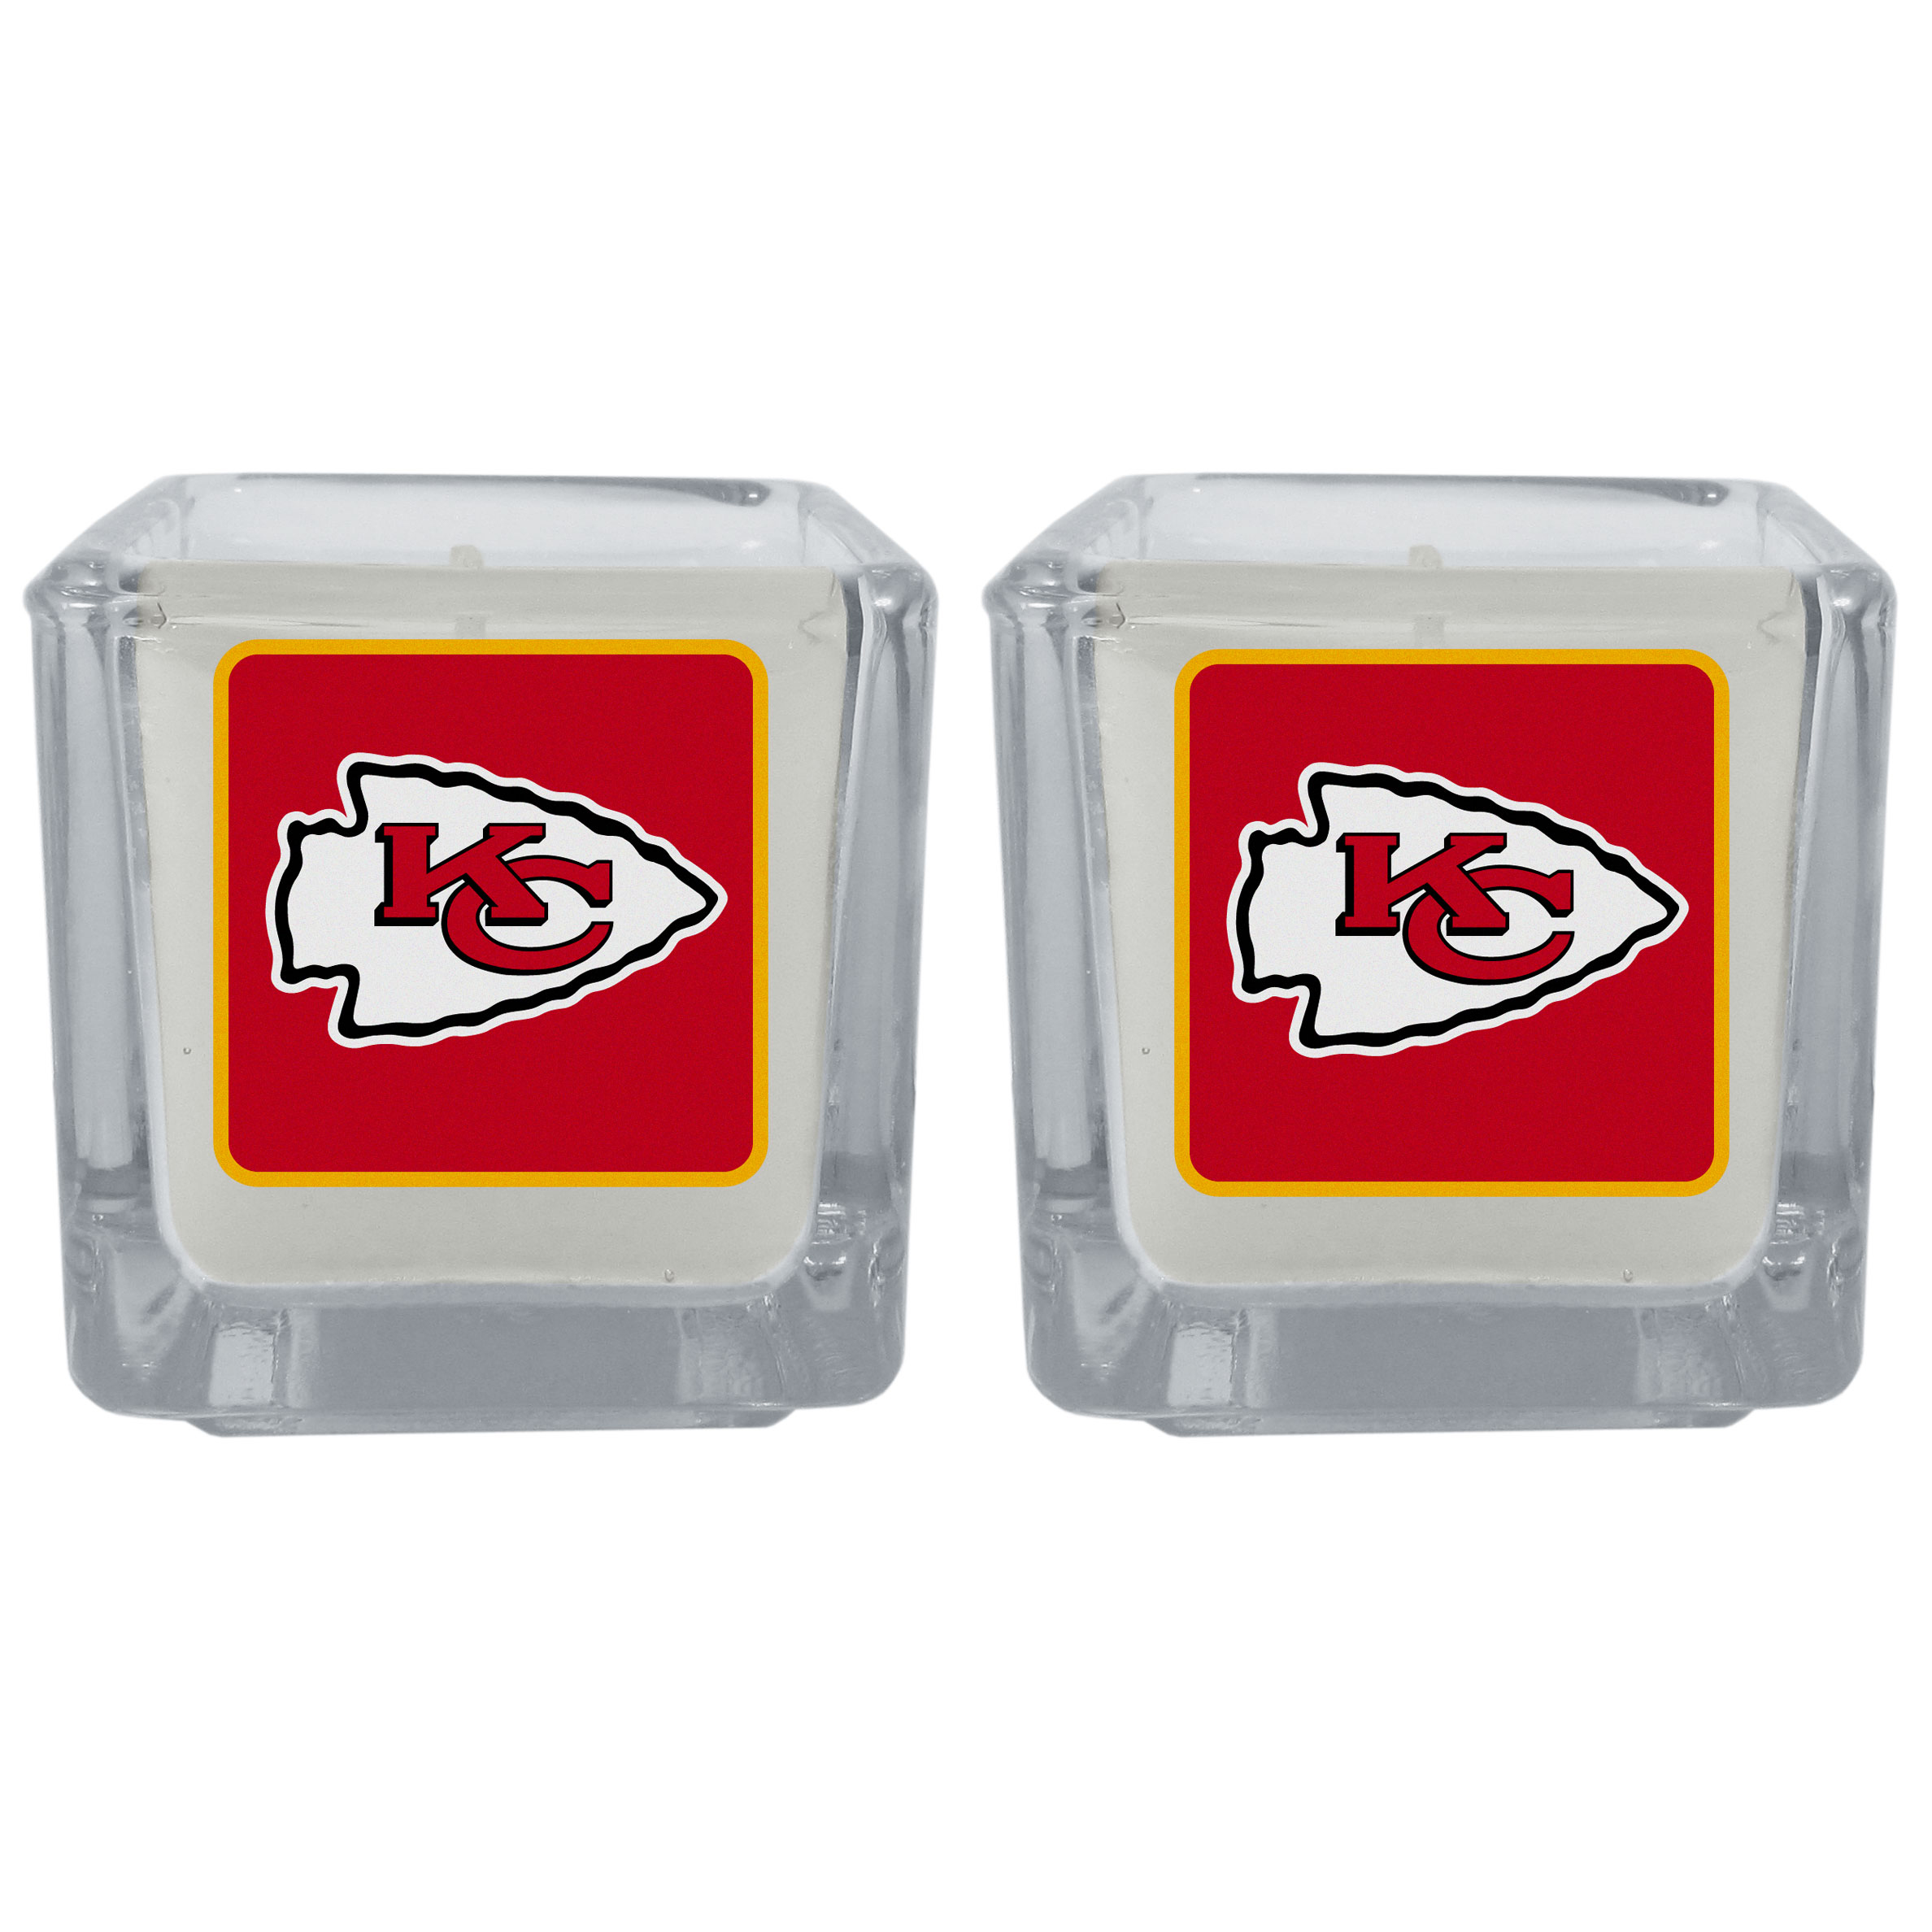 Kansas City Chiefs Graphics Candle Set - Our candle set features 2 lightly vanilla scented candles with the Kansas City Chiefs logo expertly printed on front. The candles are 2 inches tall in the votive style.